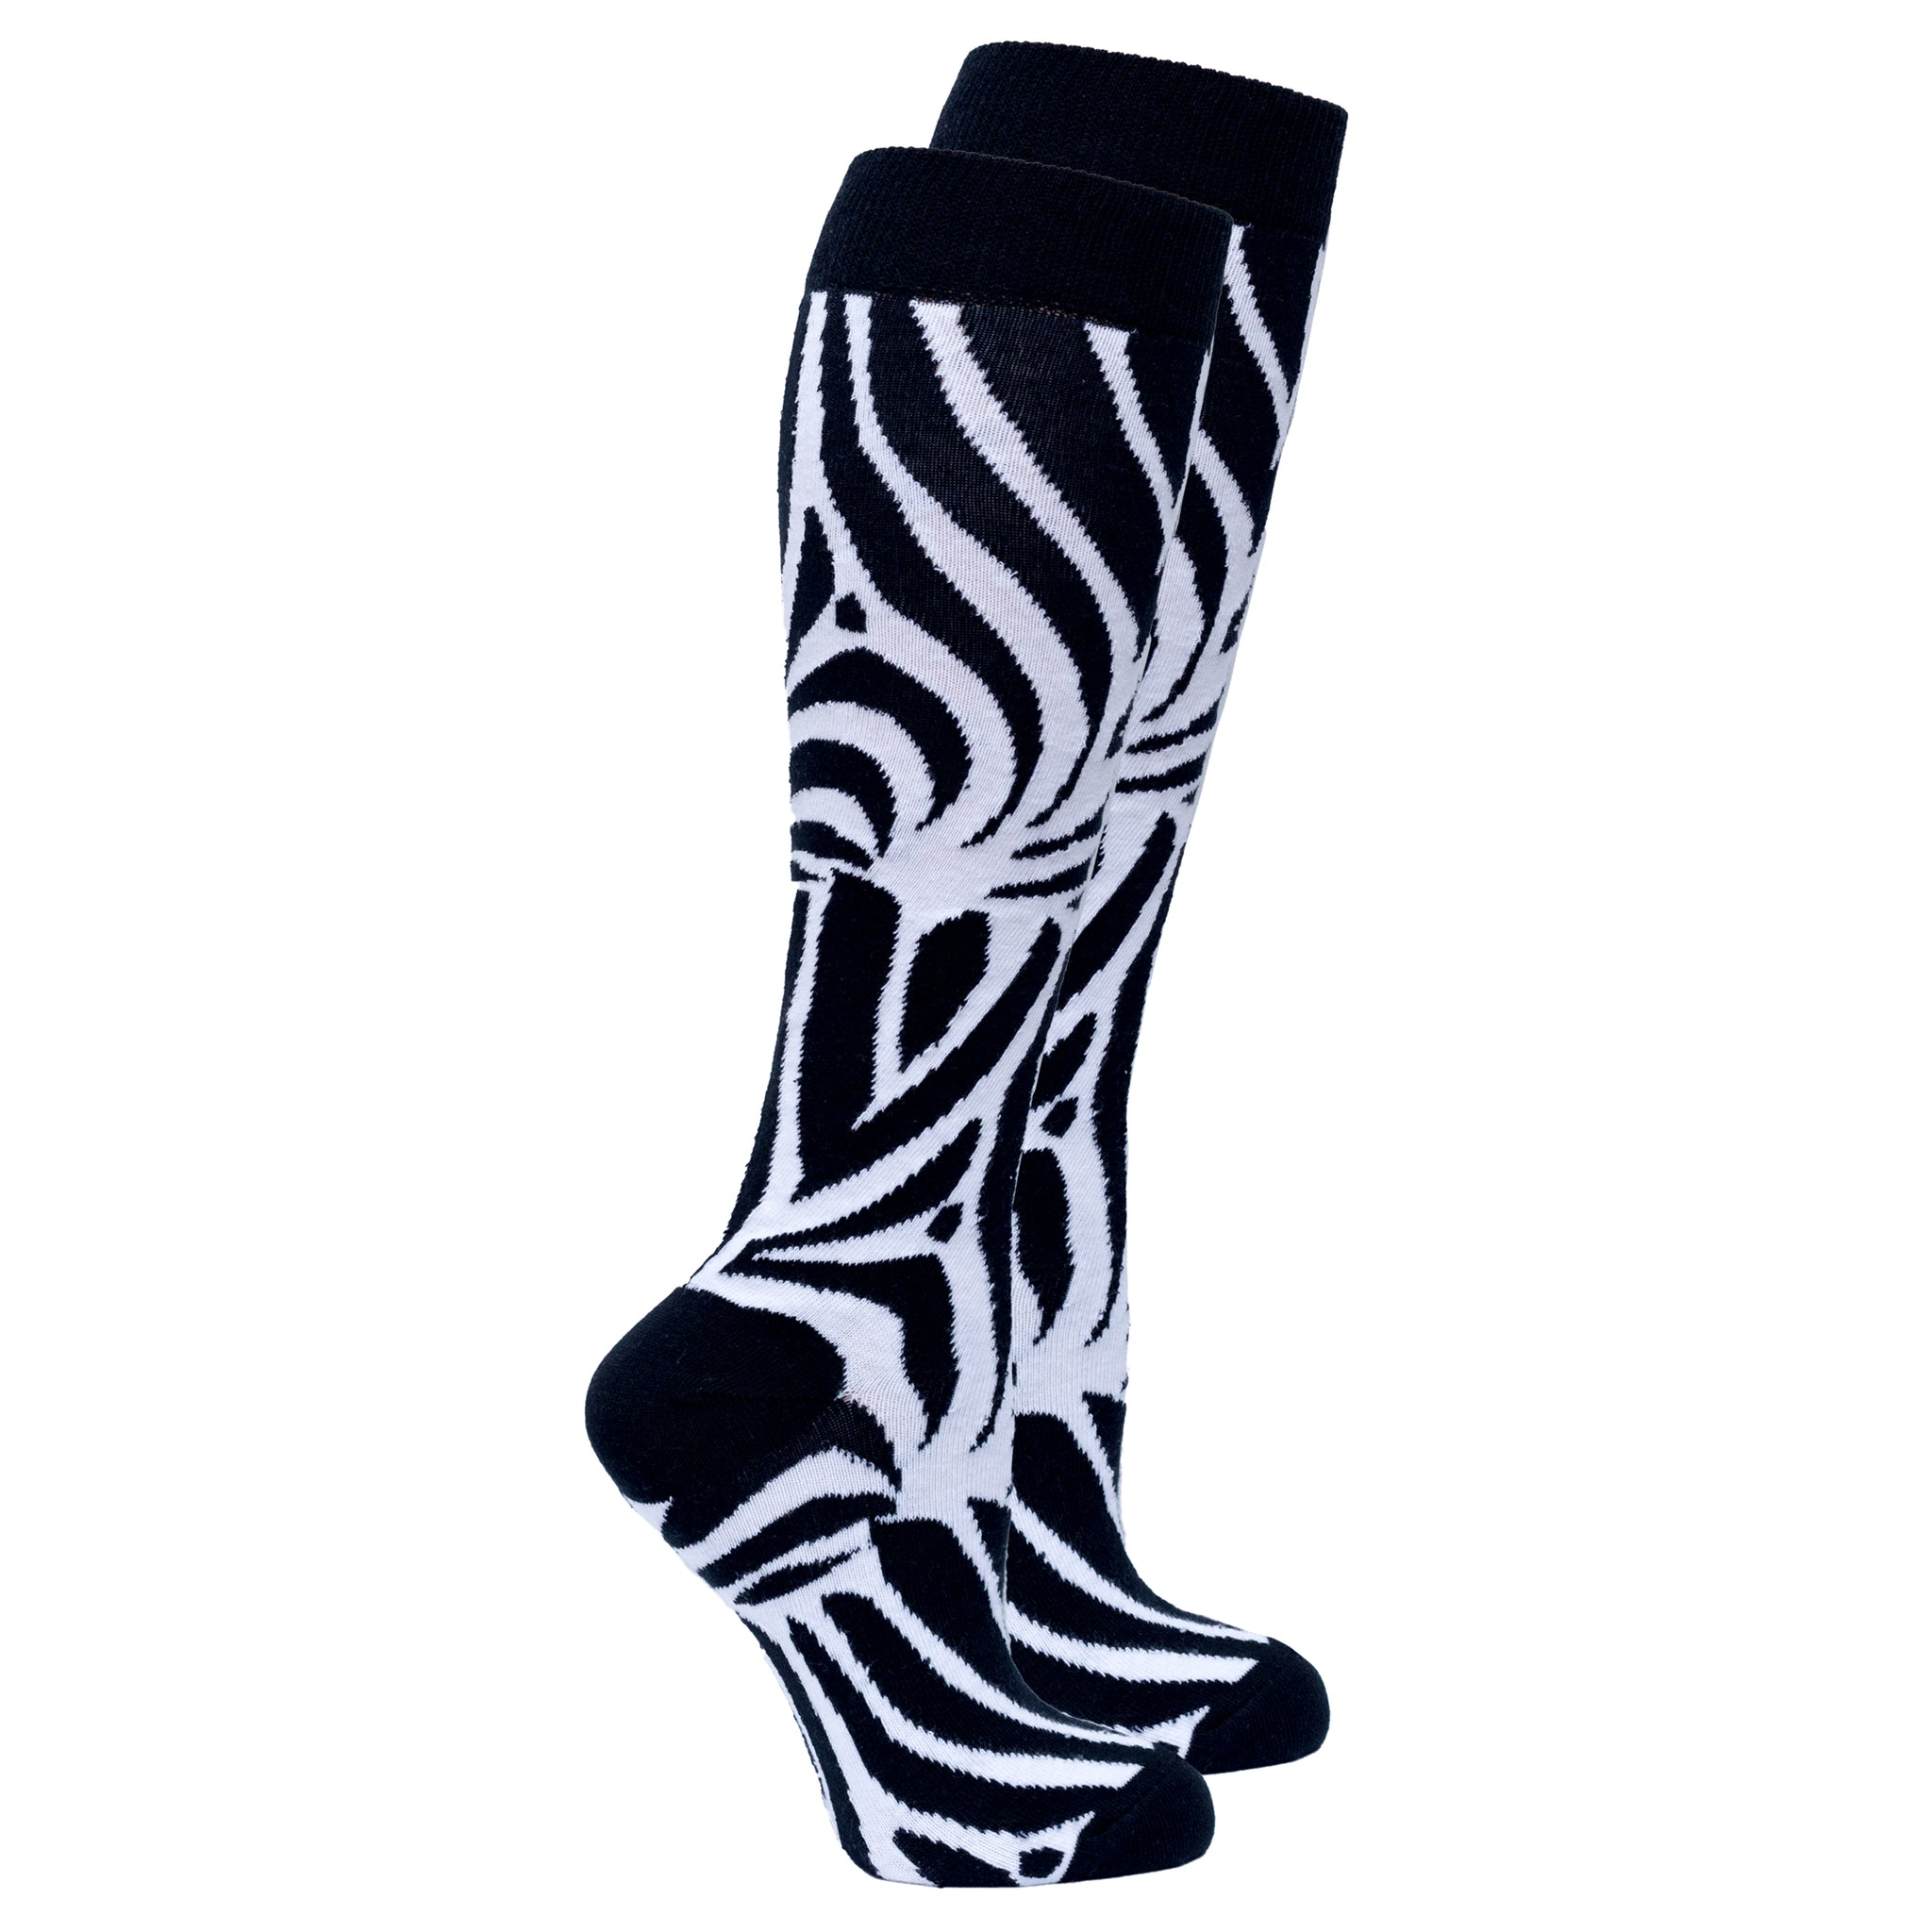 Women's Zebra Knee High Socks